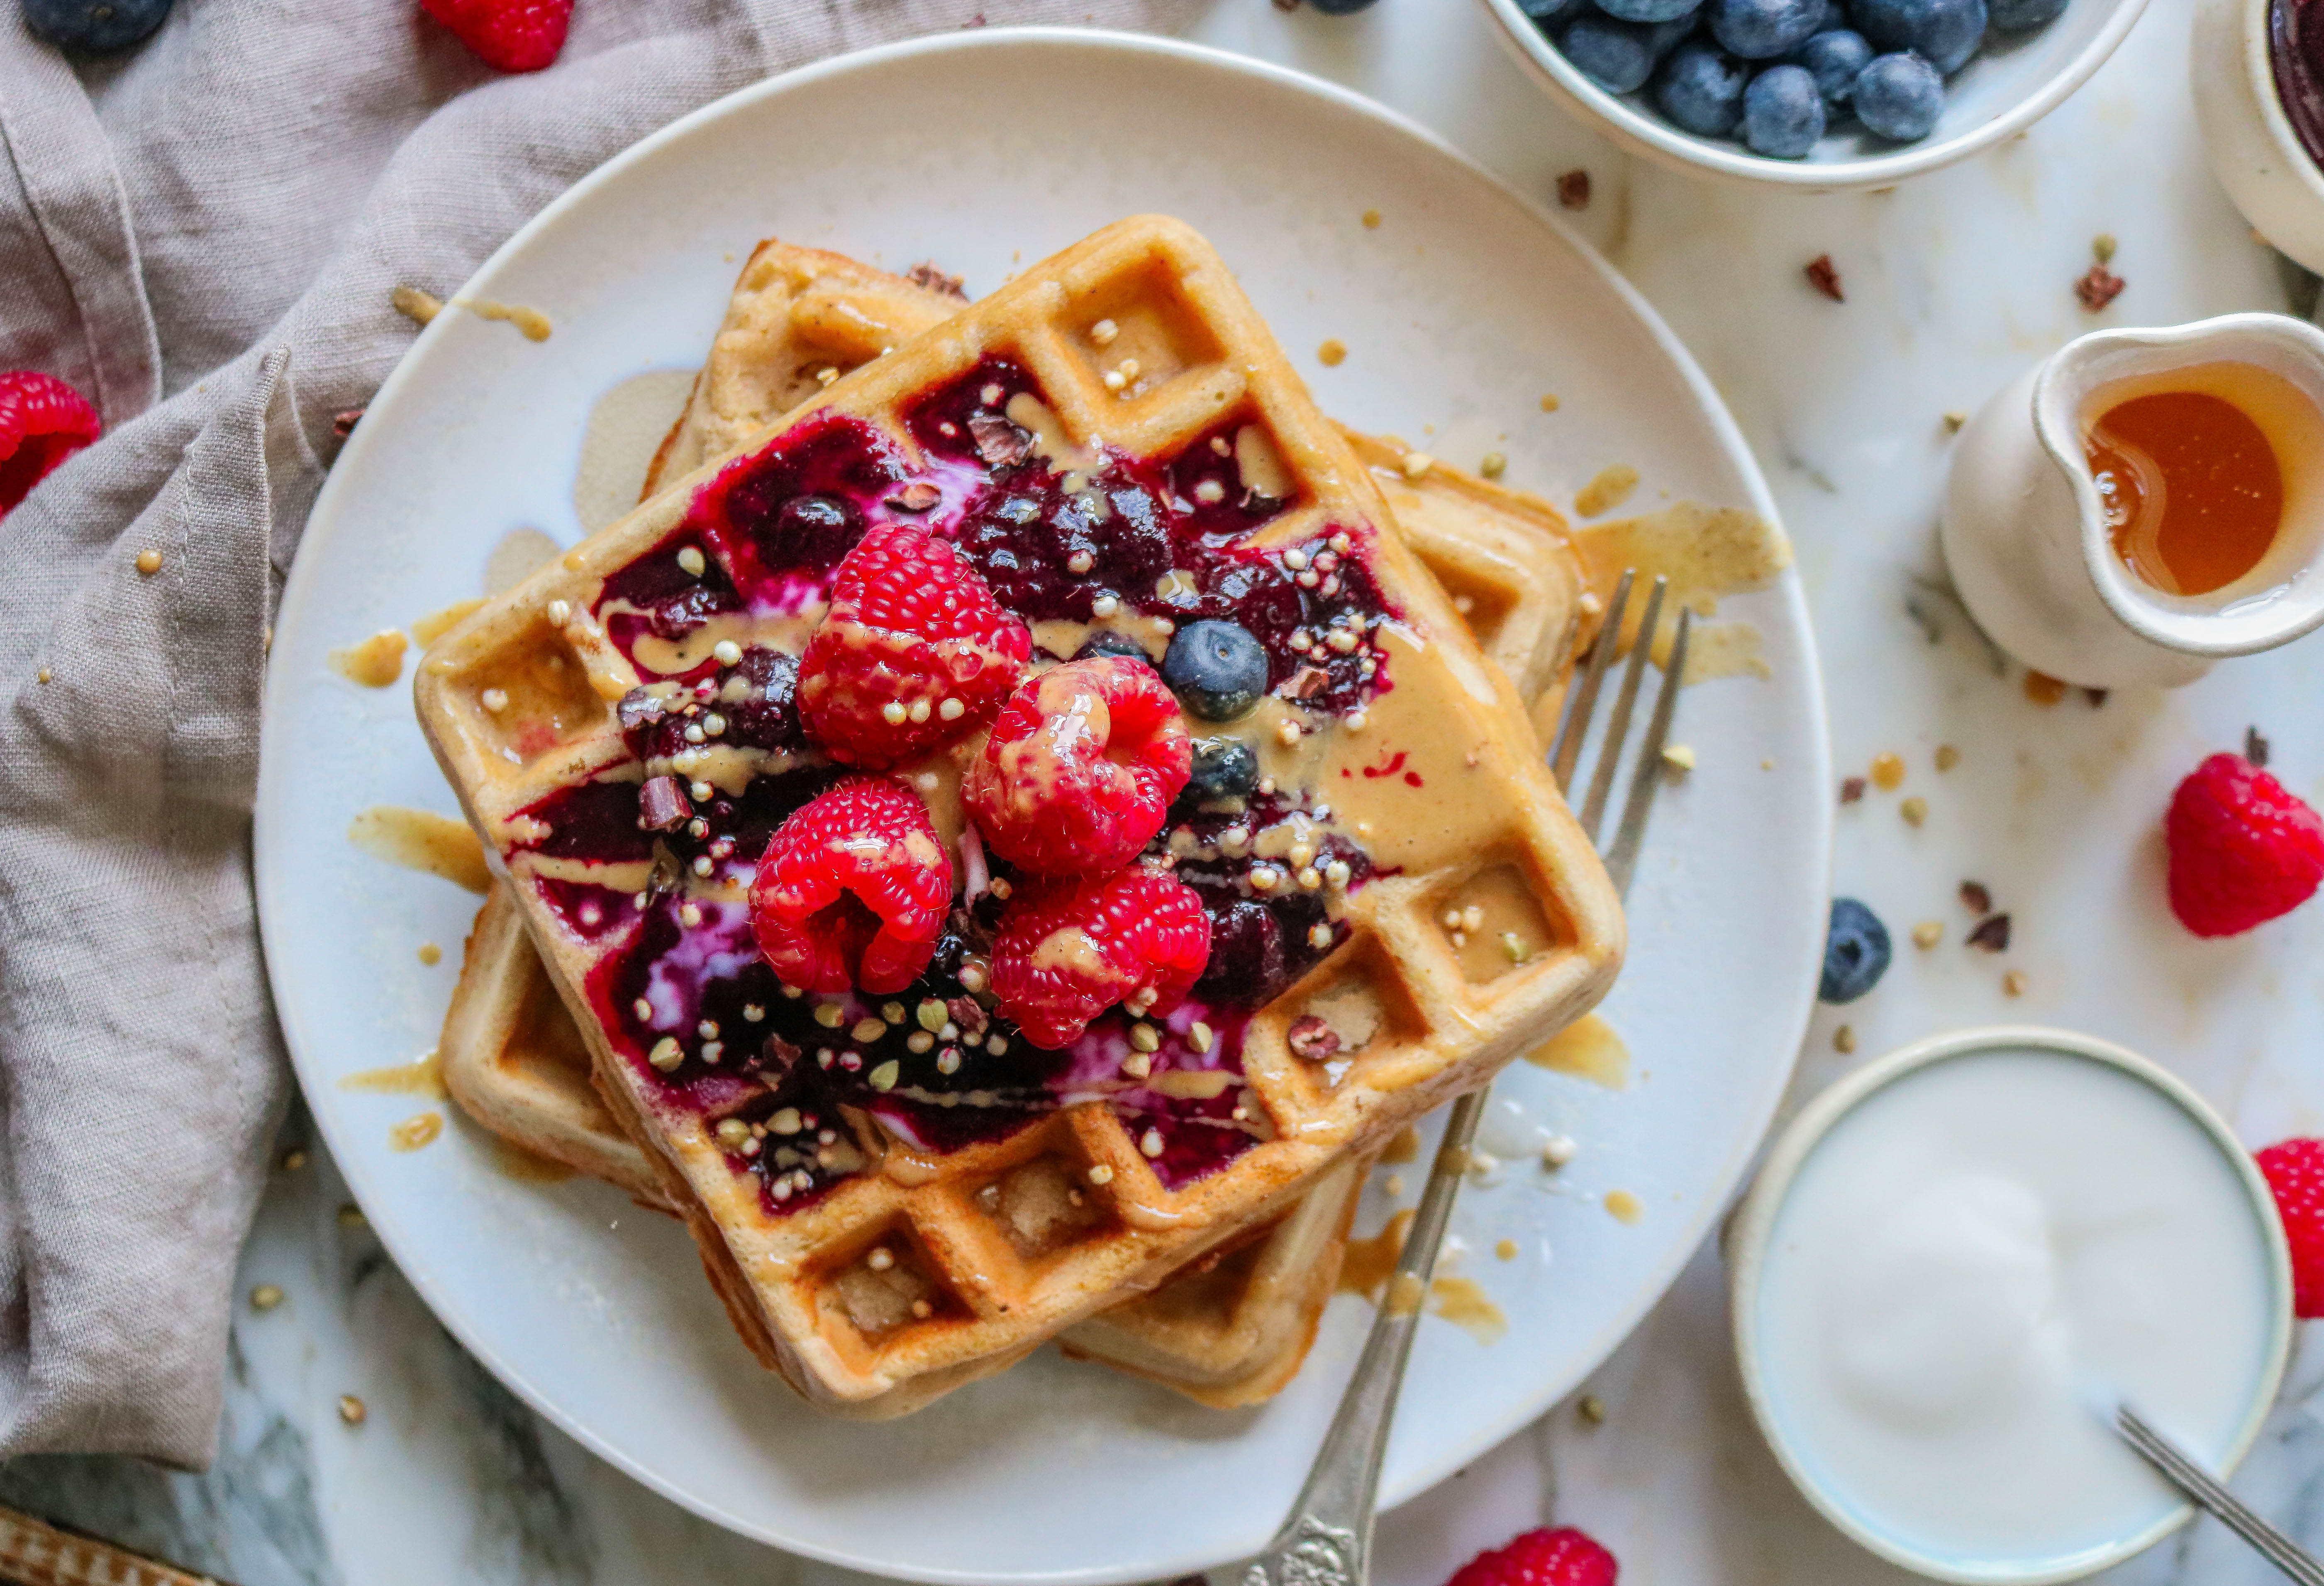 Vanilla Waffles with Blueberry Compote